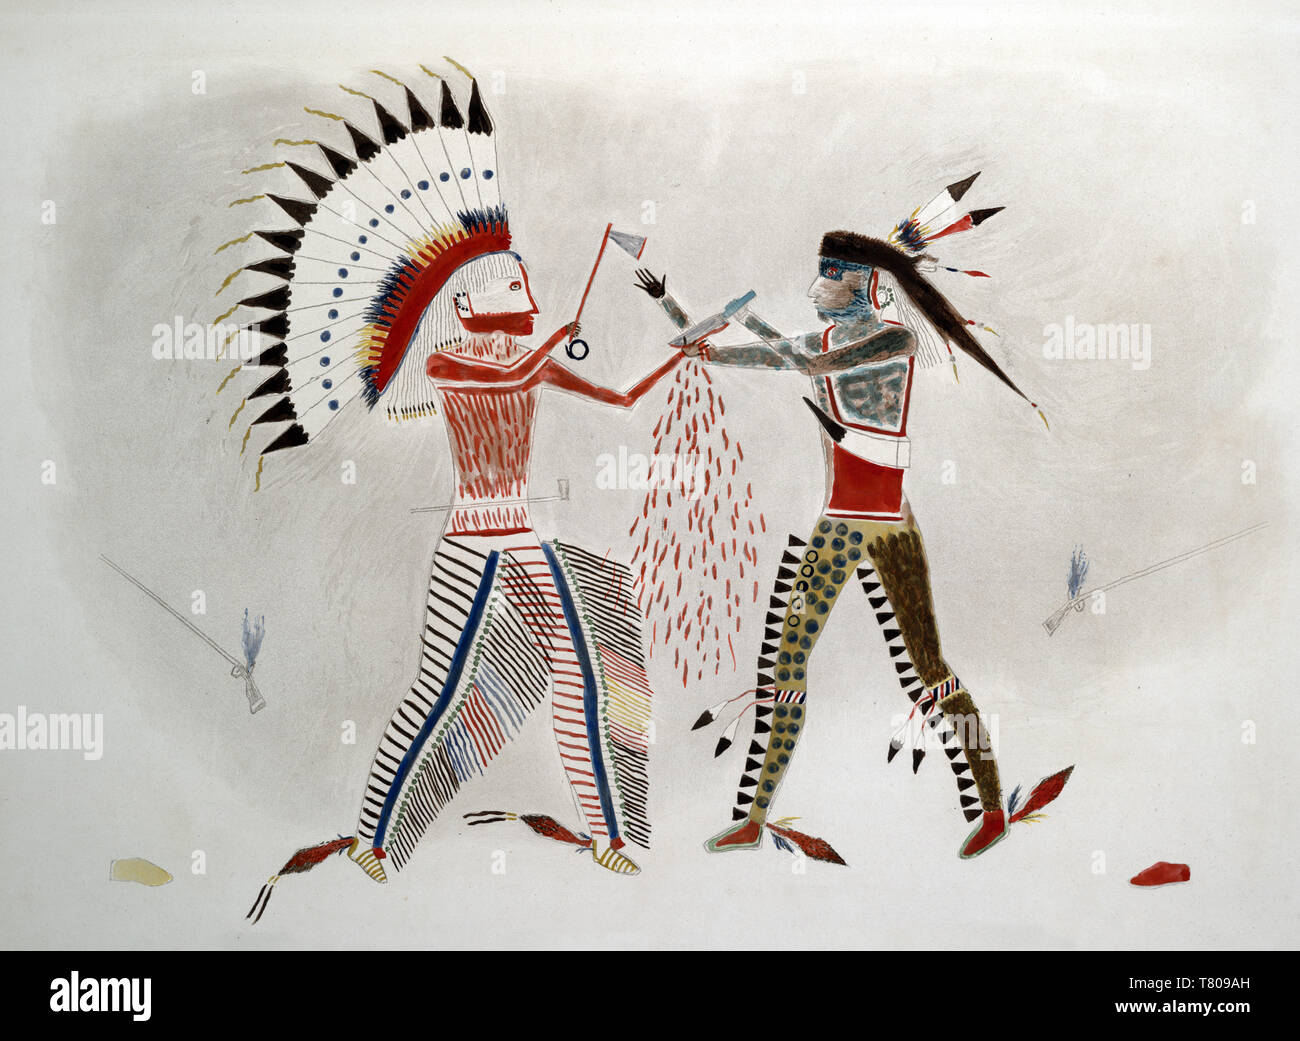 Mato-tope Fights Cheyenne Indian Chief Stock Photo